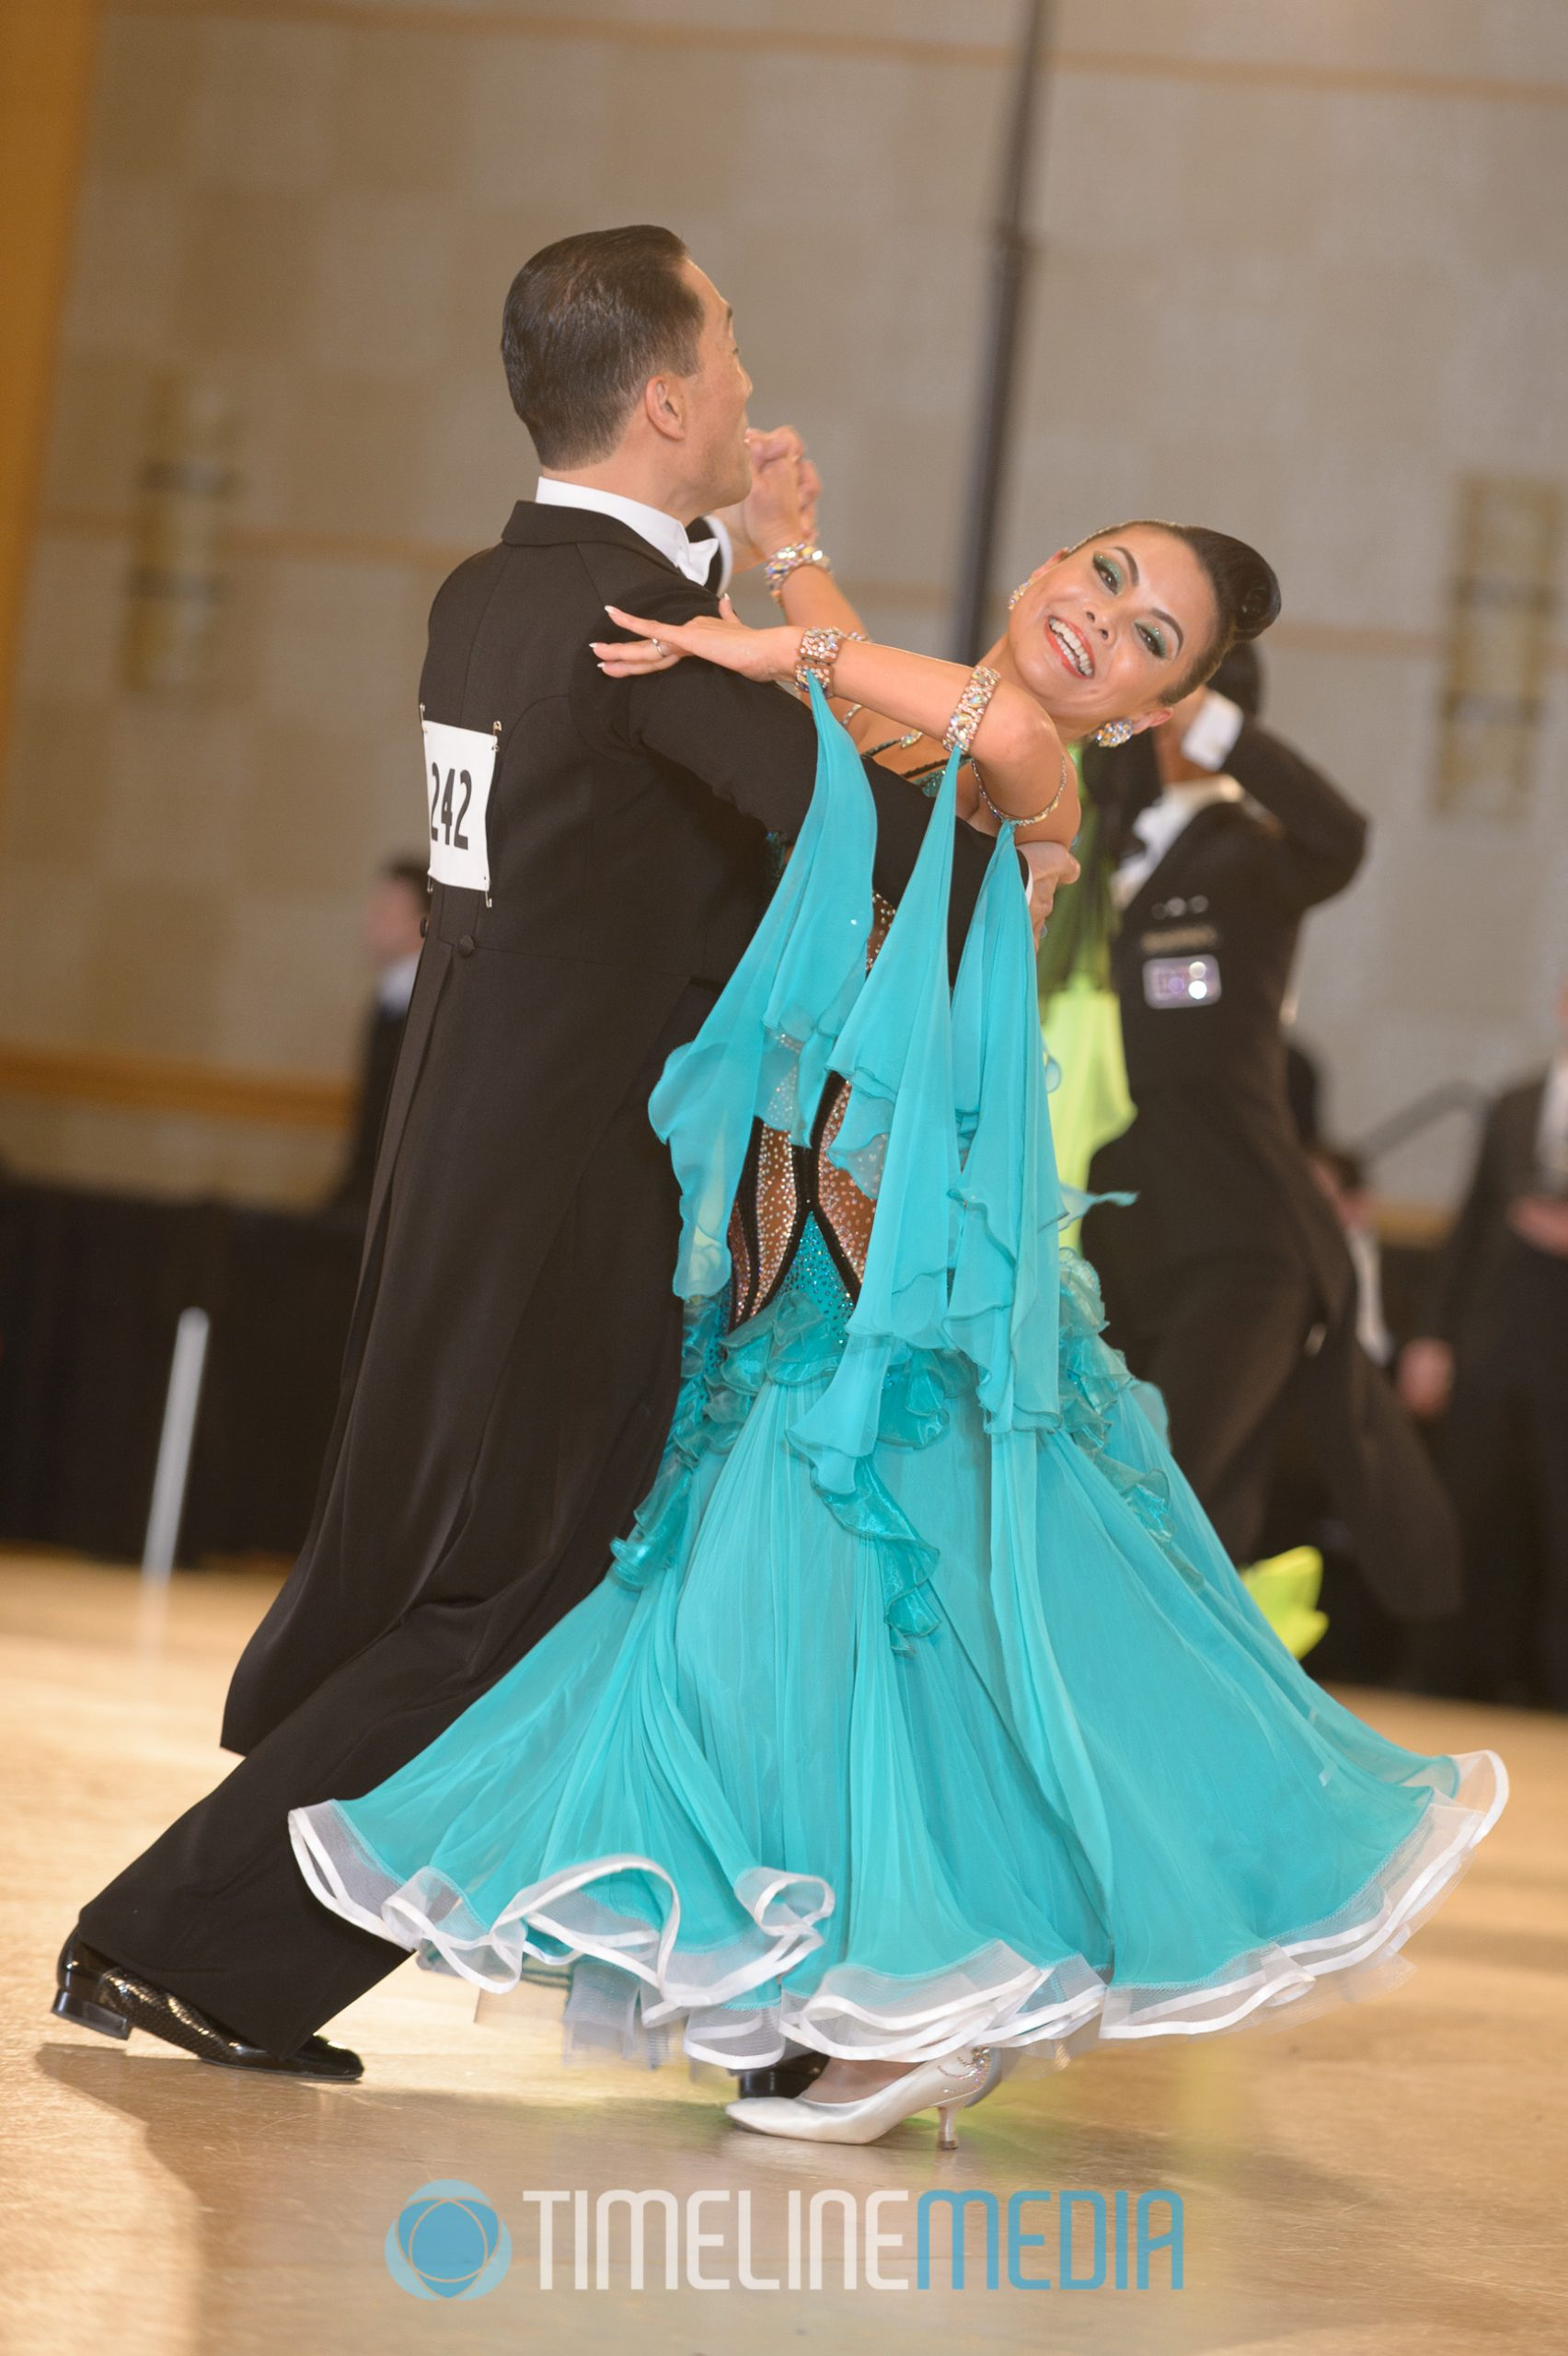 Dancing competing at the Mid-Atlantic Championships ©TimeLine Media